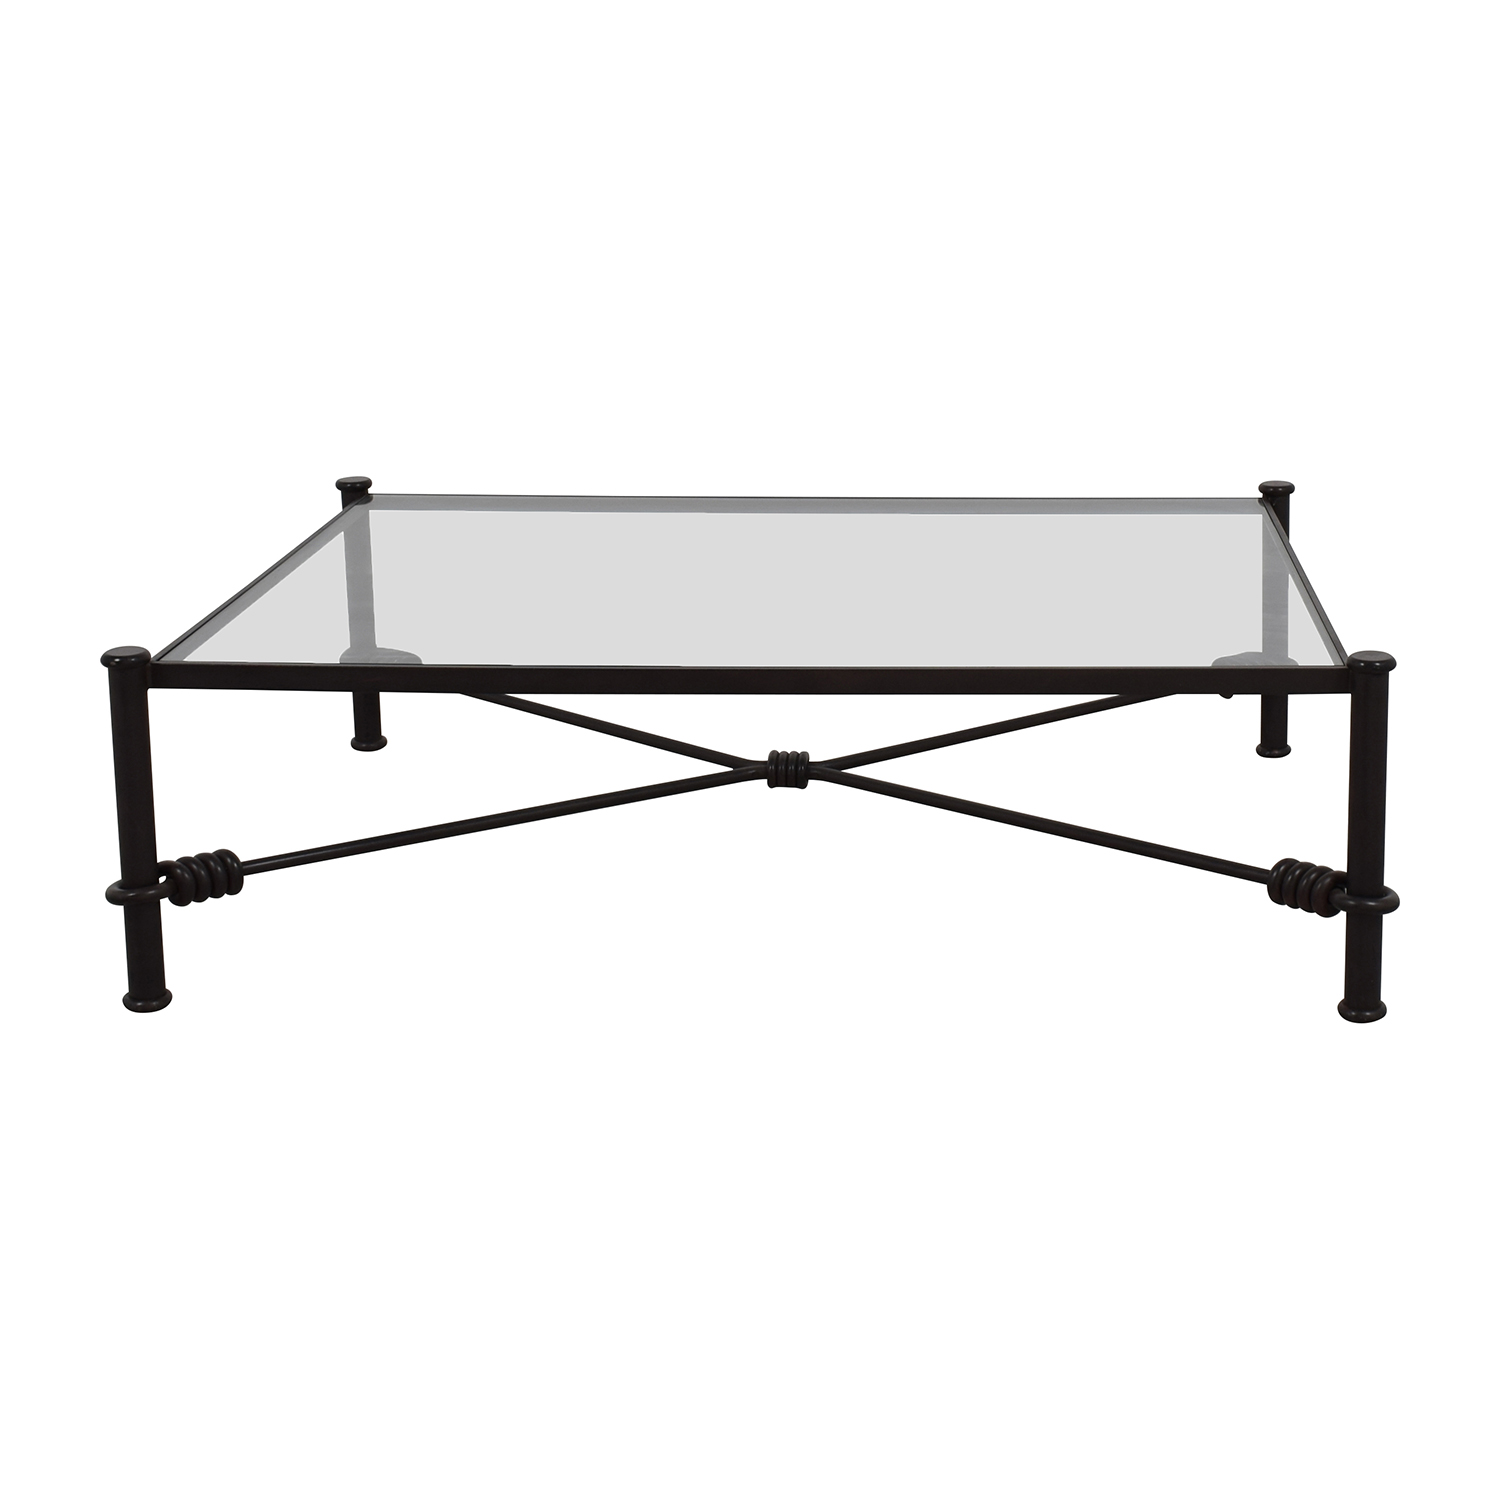 Charmant Black Wrought Iron Glass Coffee Table